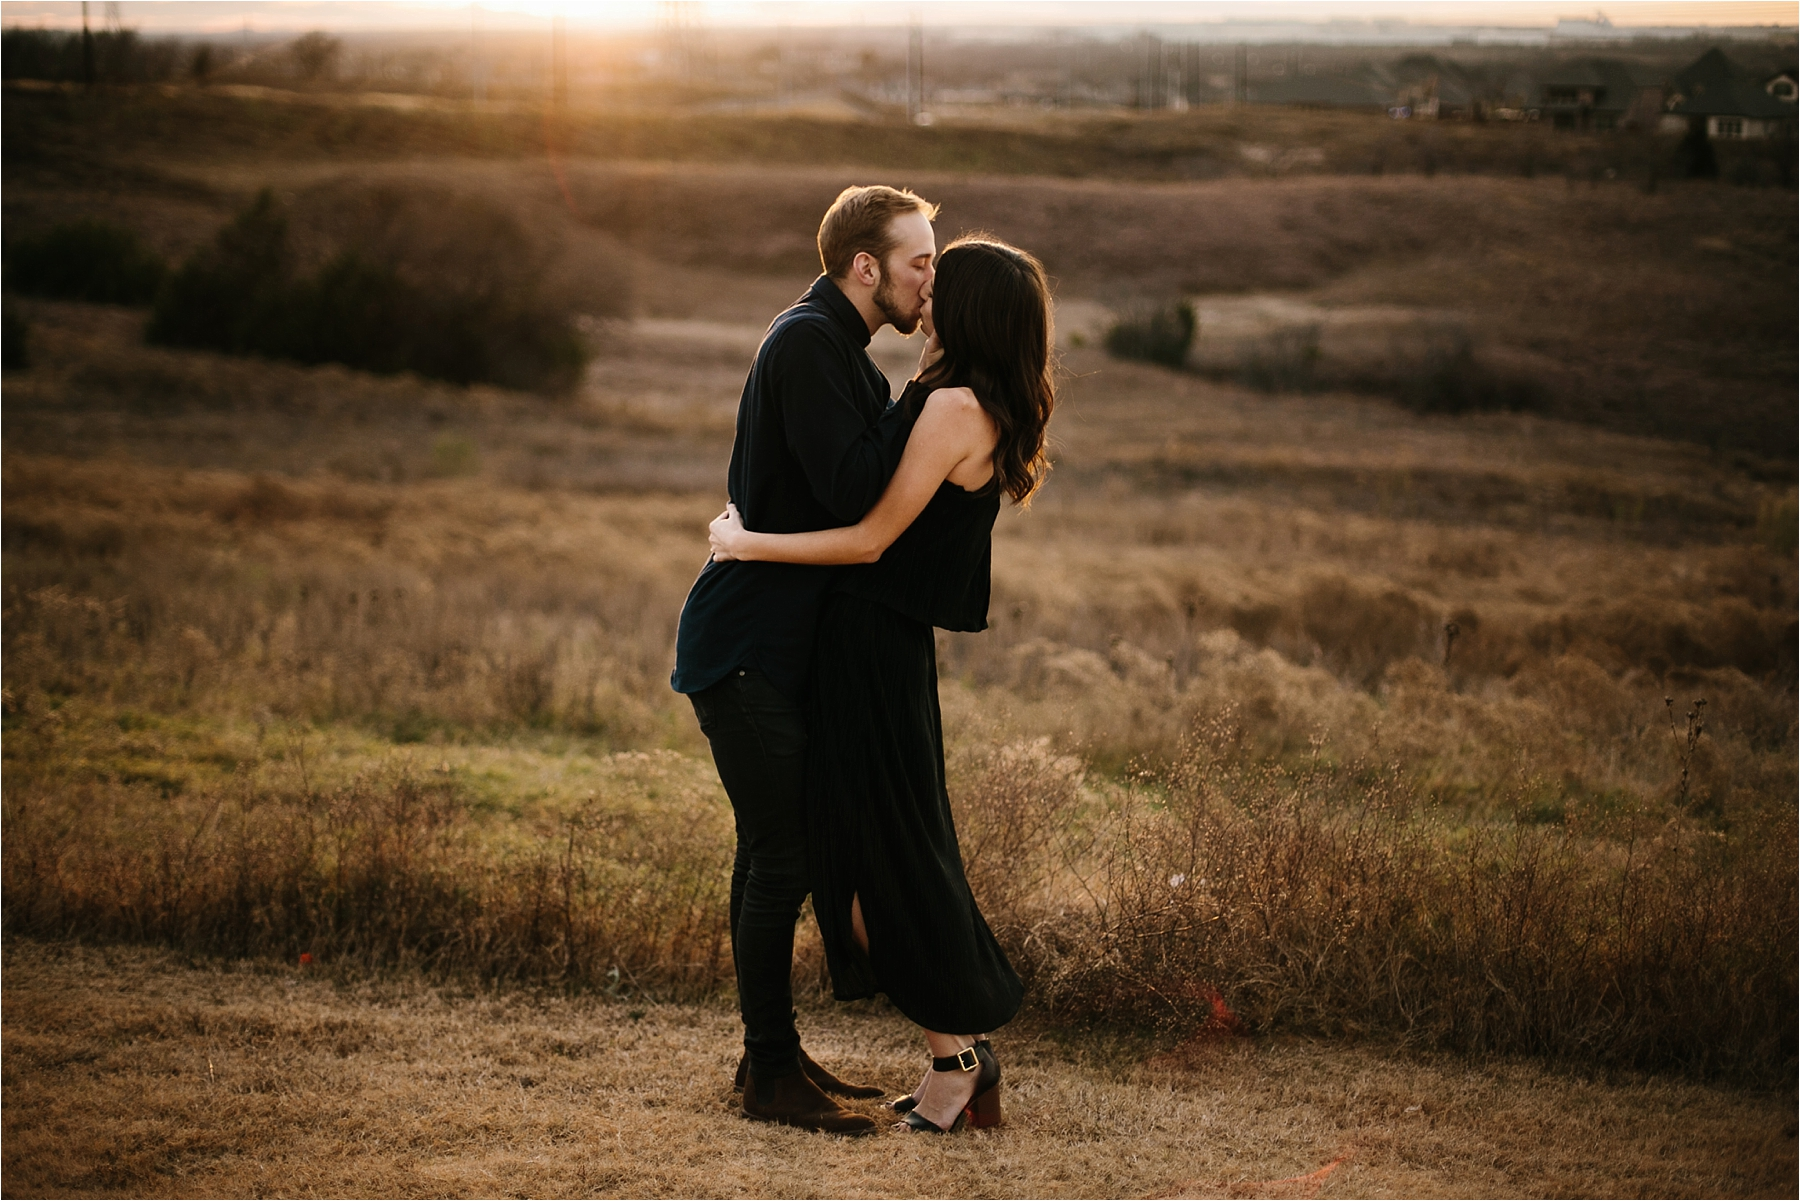 Trey + Phoebe __ a playful, intimate engagement session with dark_neutral outfit inspiration by North Texas Wedding Photographer Rachel Meagan Photography __ 32